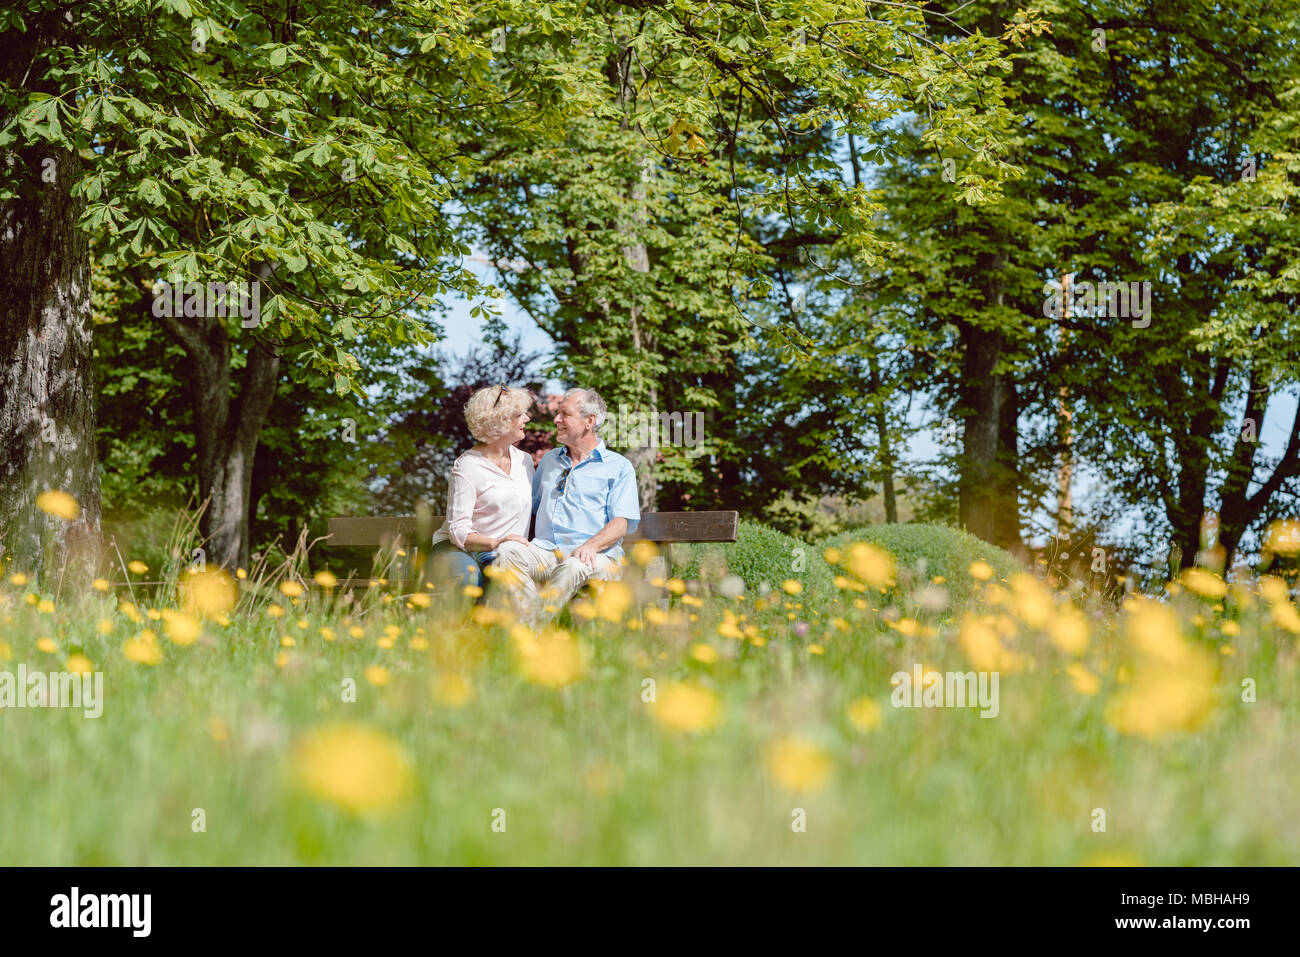 Romantic senior couple in love dating outdoors in an idyllic park - Stock Image